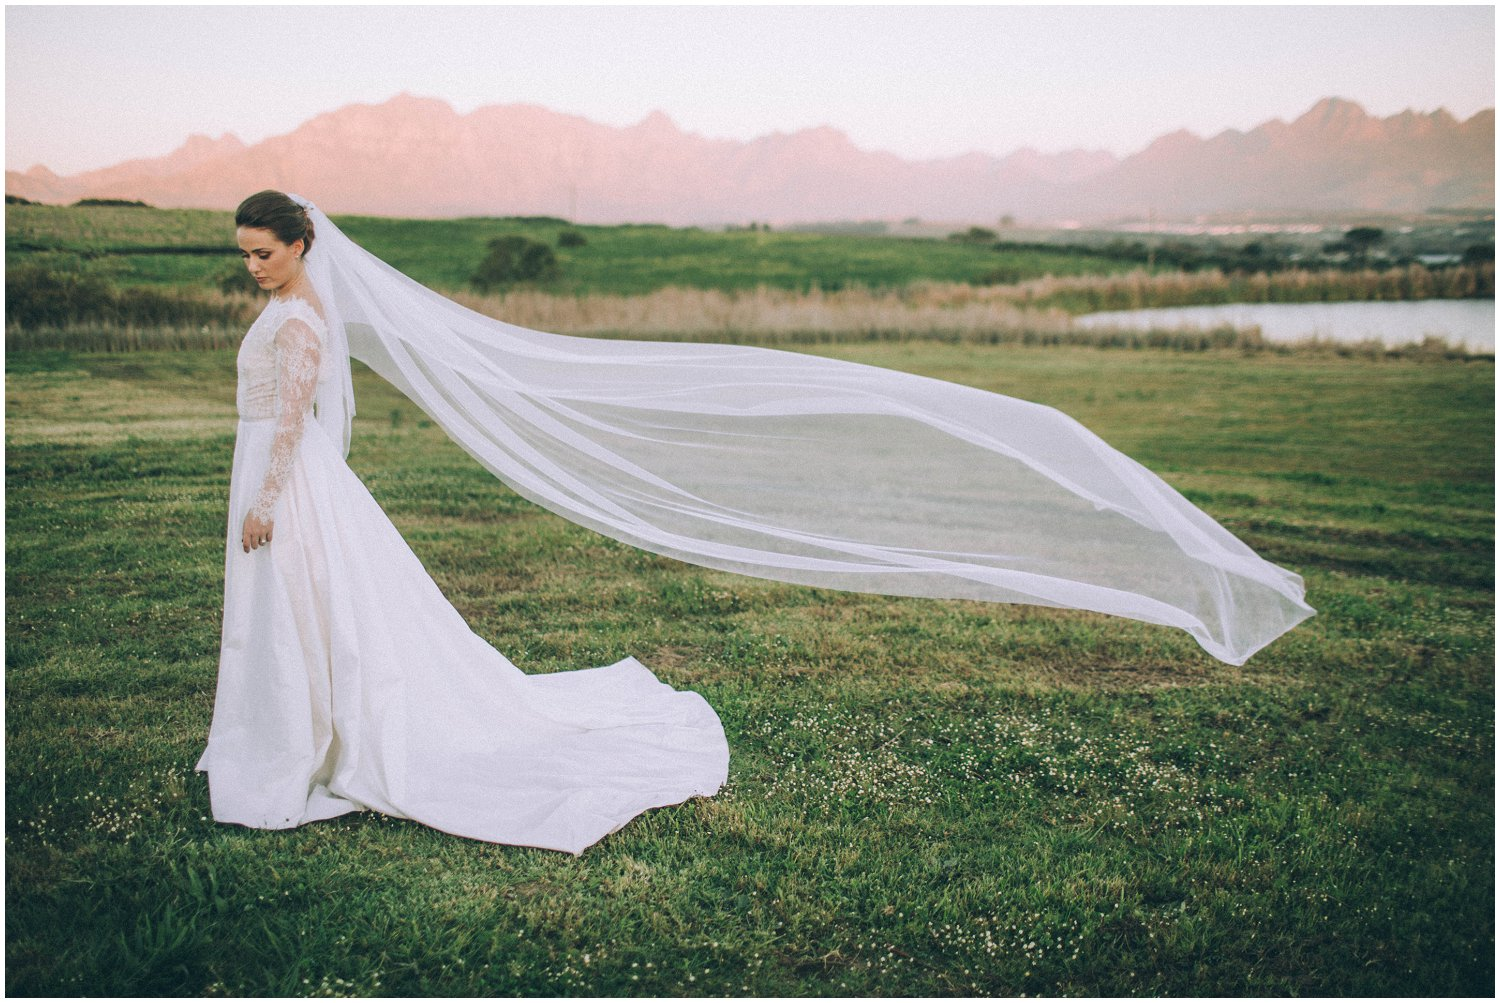 Top Wedding Photographer Cape Town South Africa Artistic Creative Documentary Wedding Photography Rue Kruger_1238.jpg